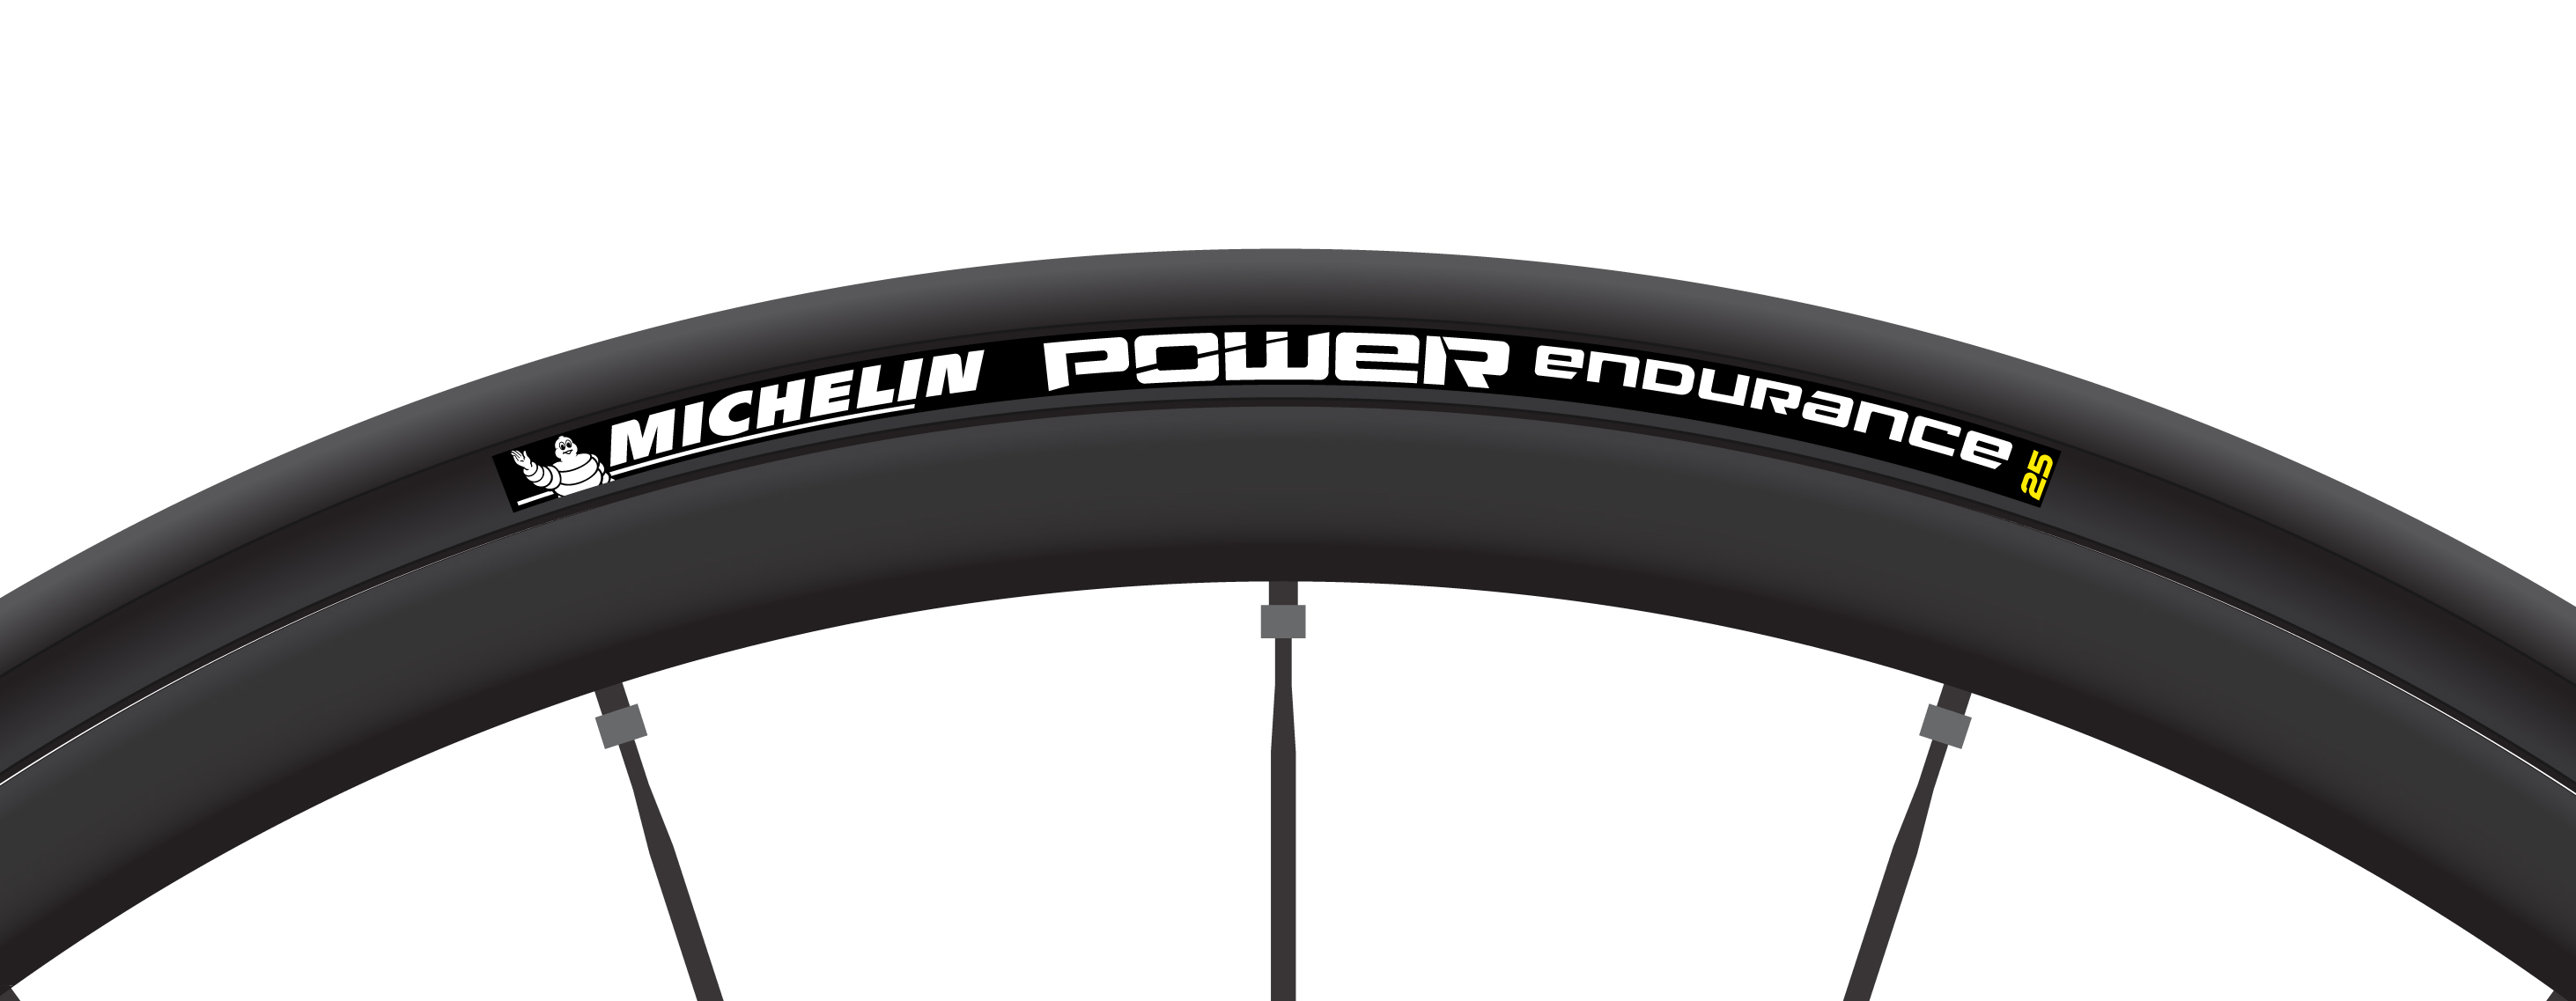 michelin brings power to the front with new range of tires meant to save your watts bikerumor. Black Bedroom Furniture Sets. Home Design Ideas